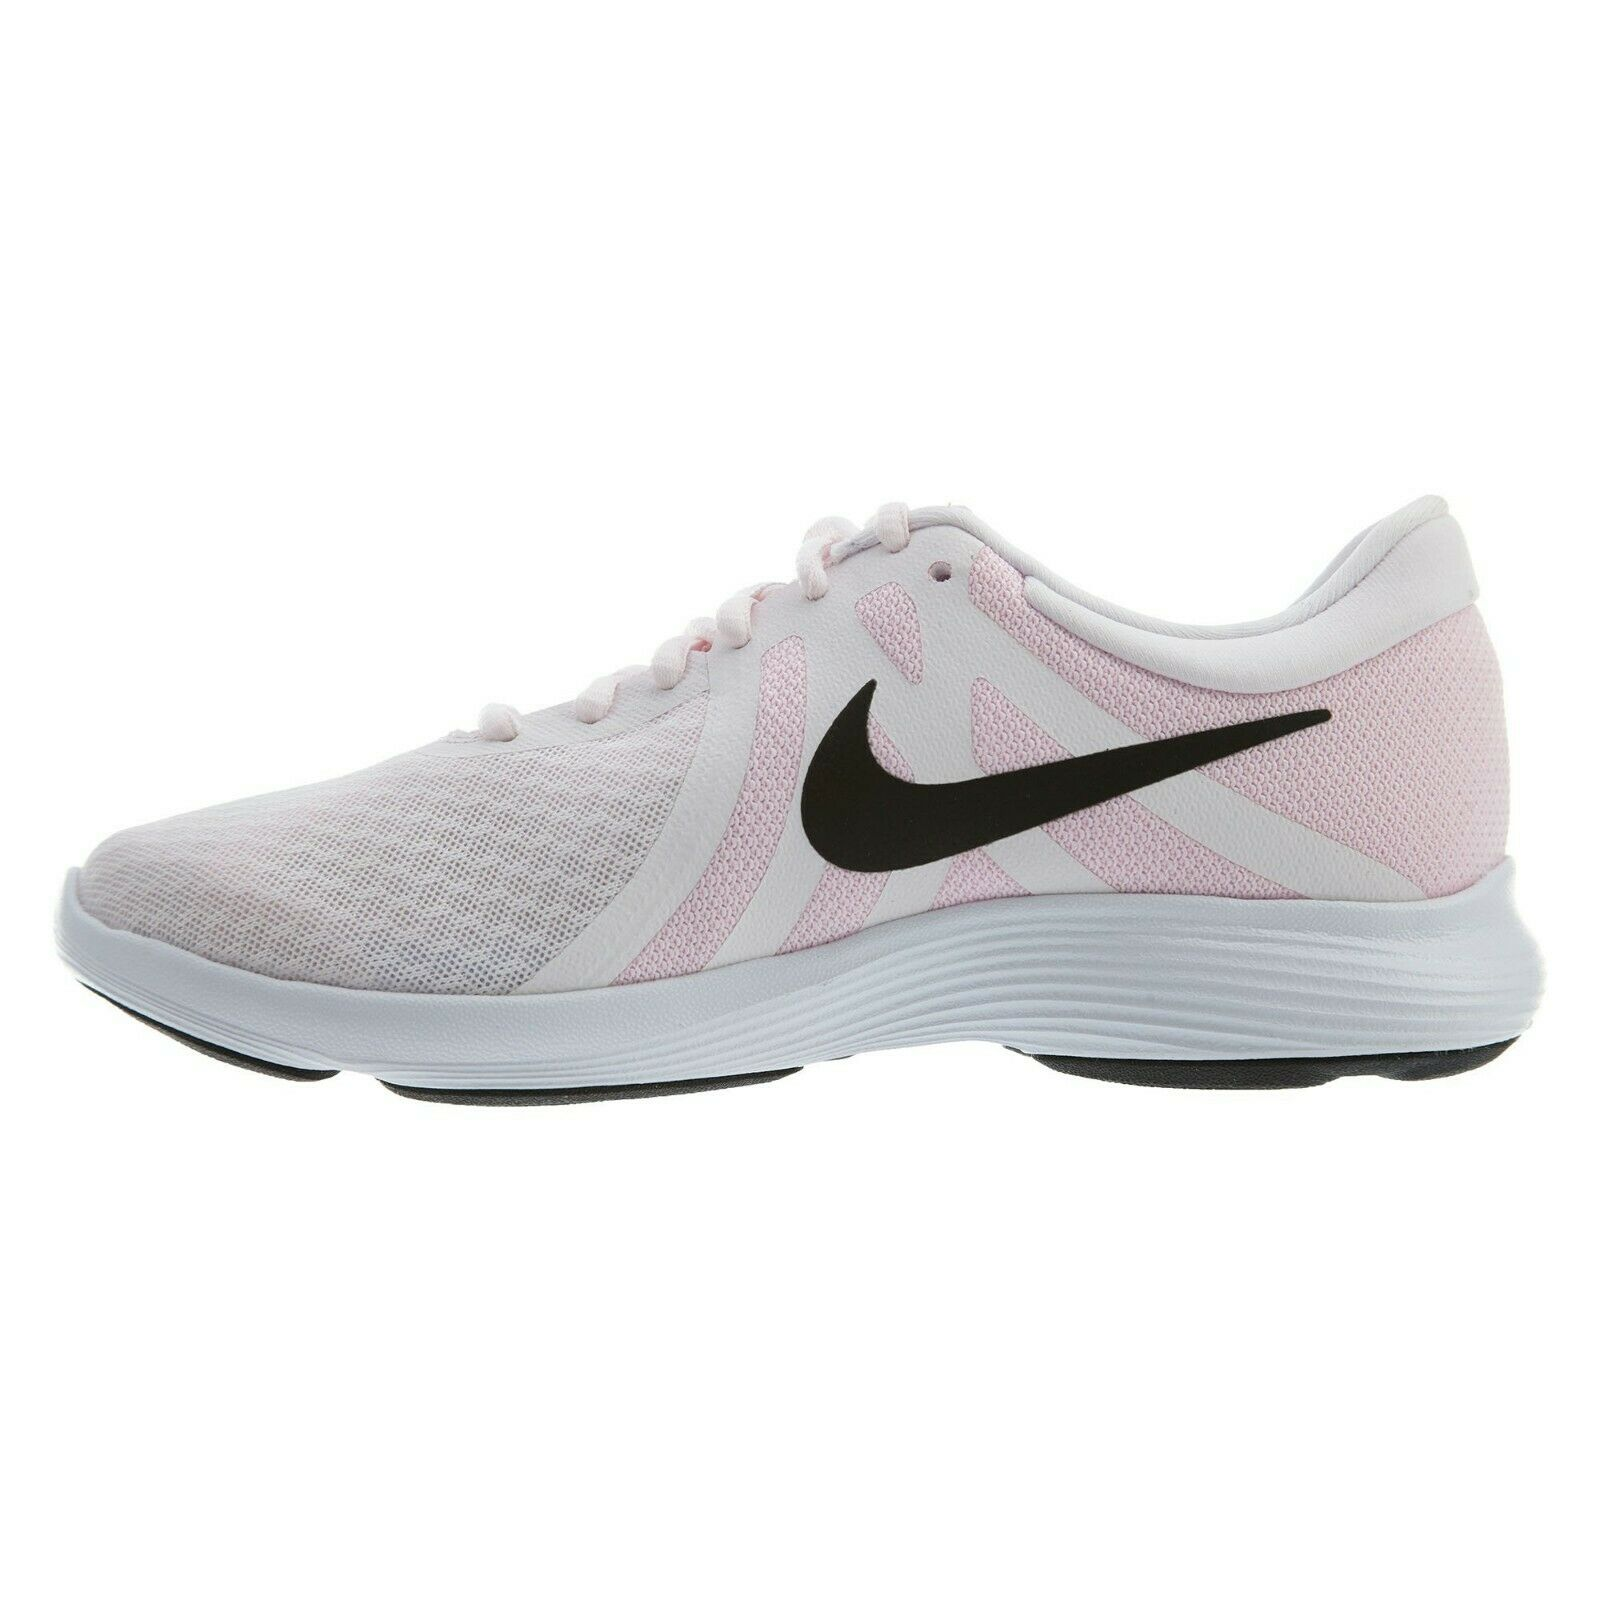 b08938f5ca01 Nike Revolution 4 Womens 908999-604 Pale Pink White Black Running ...